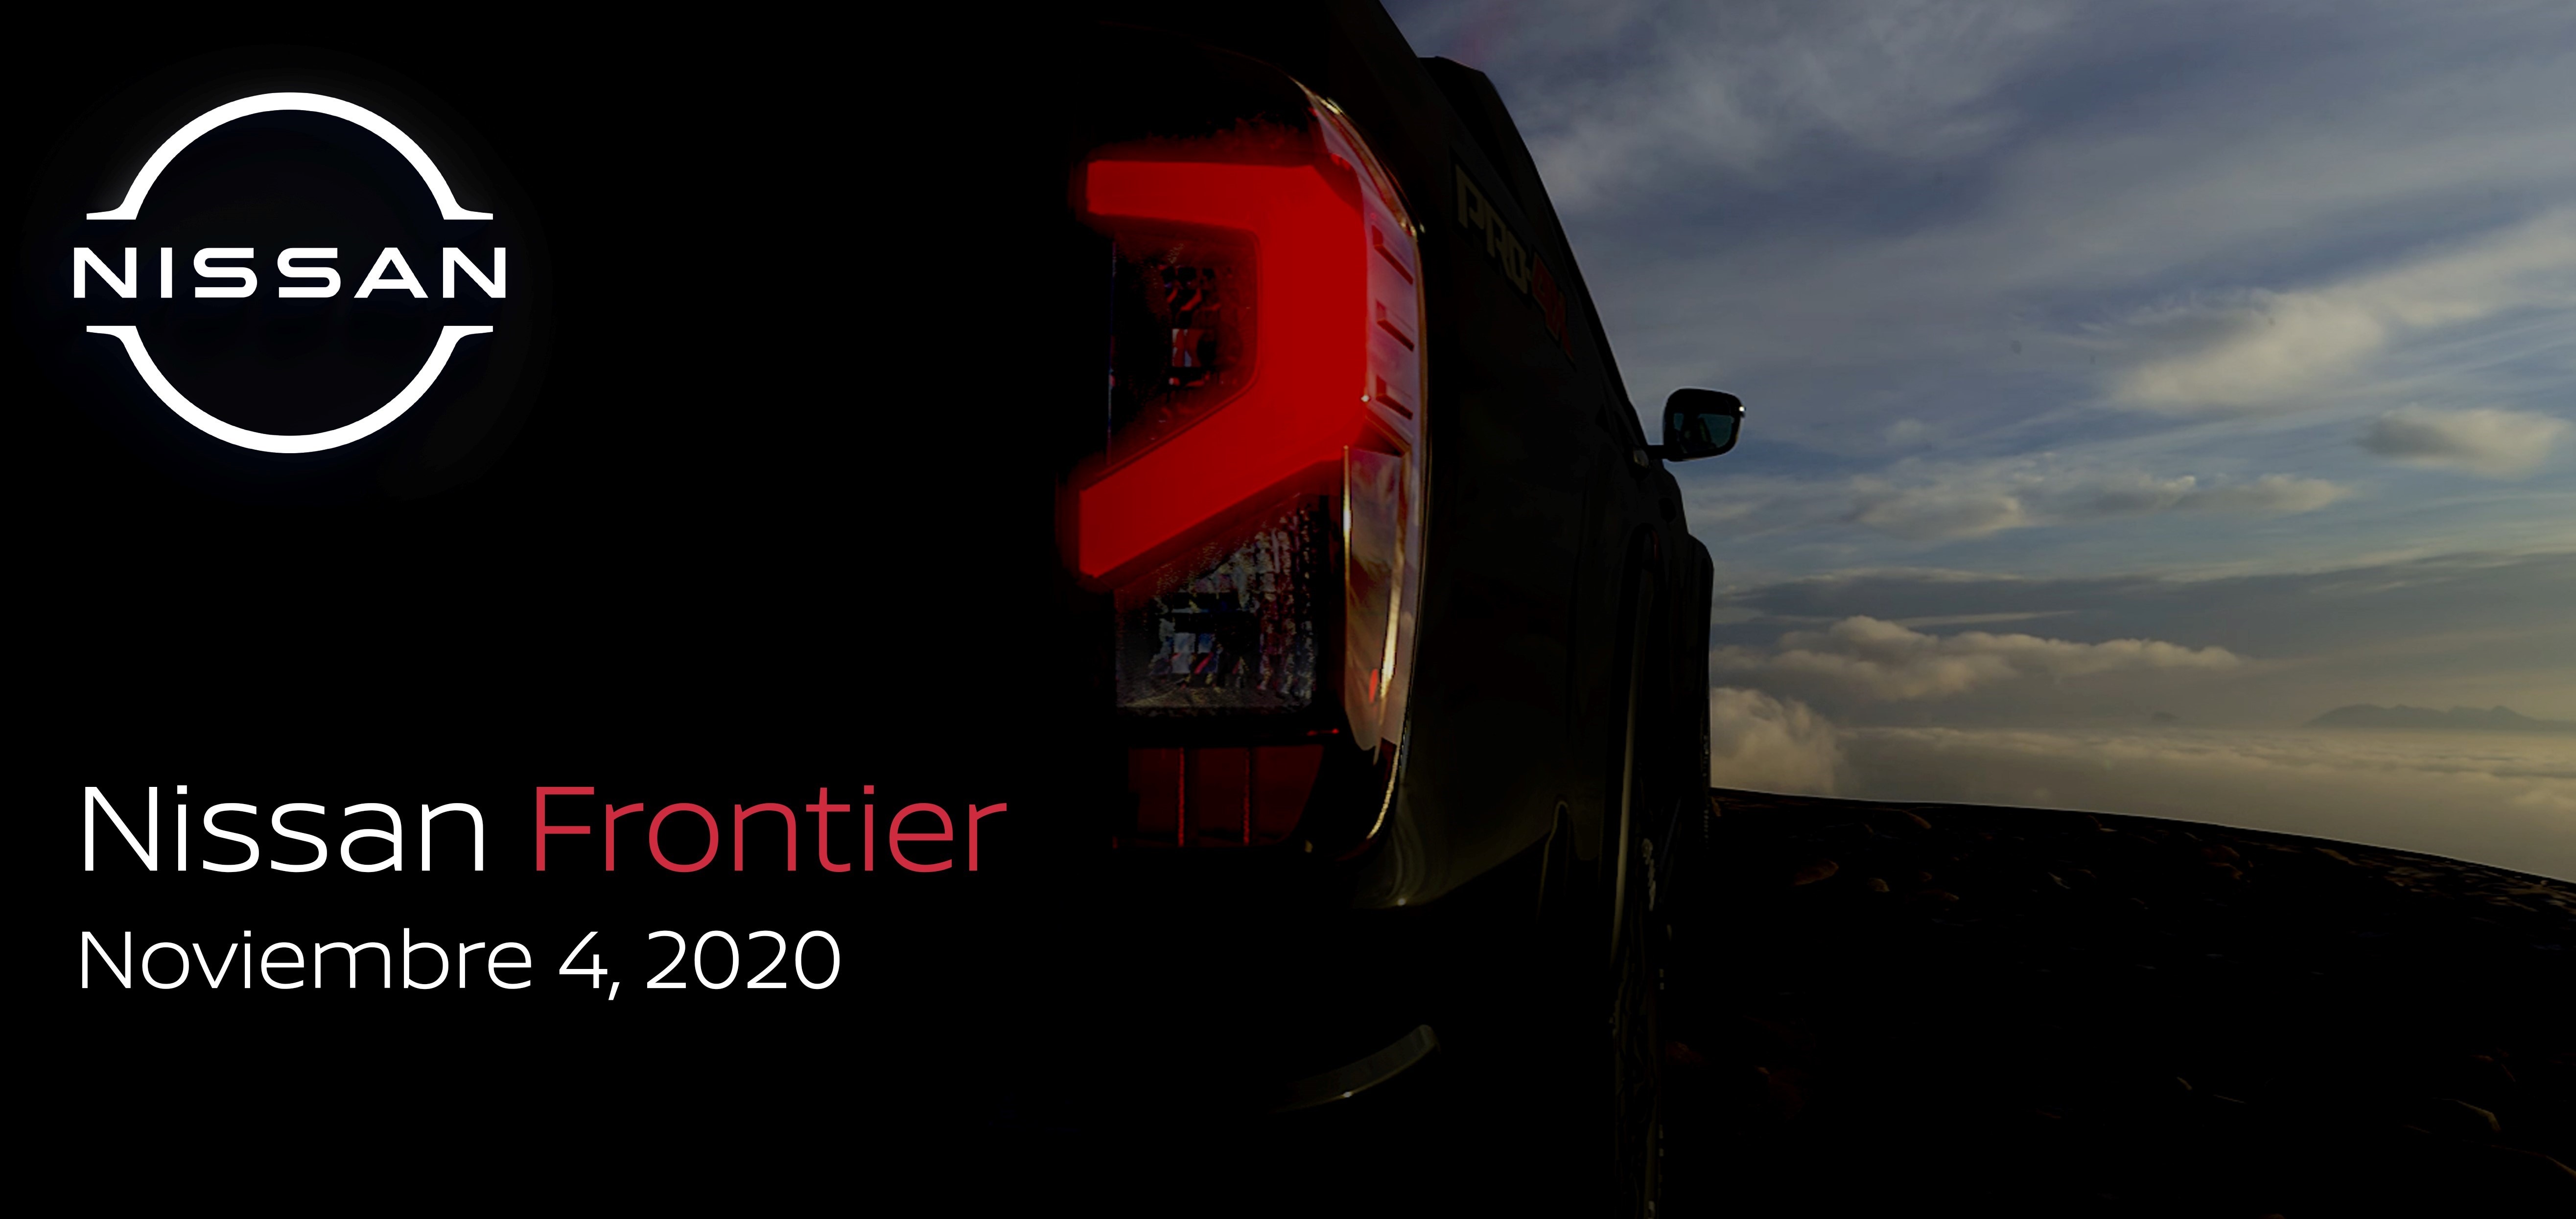 Nissan Frontier, muy pronto.